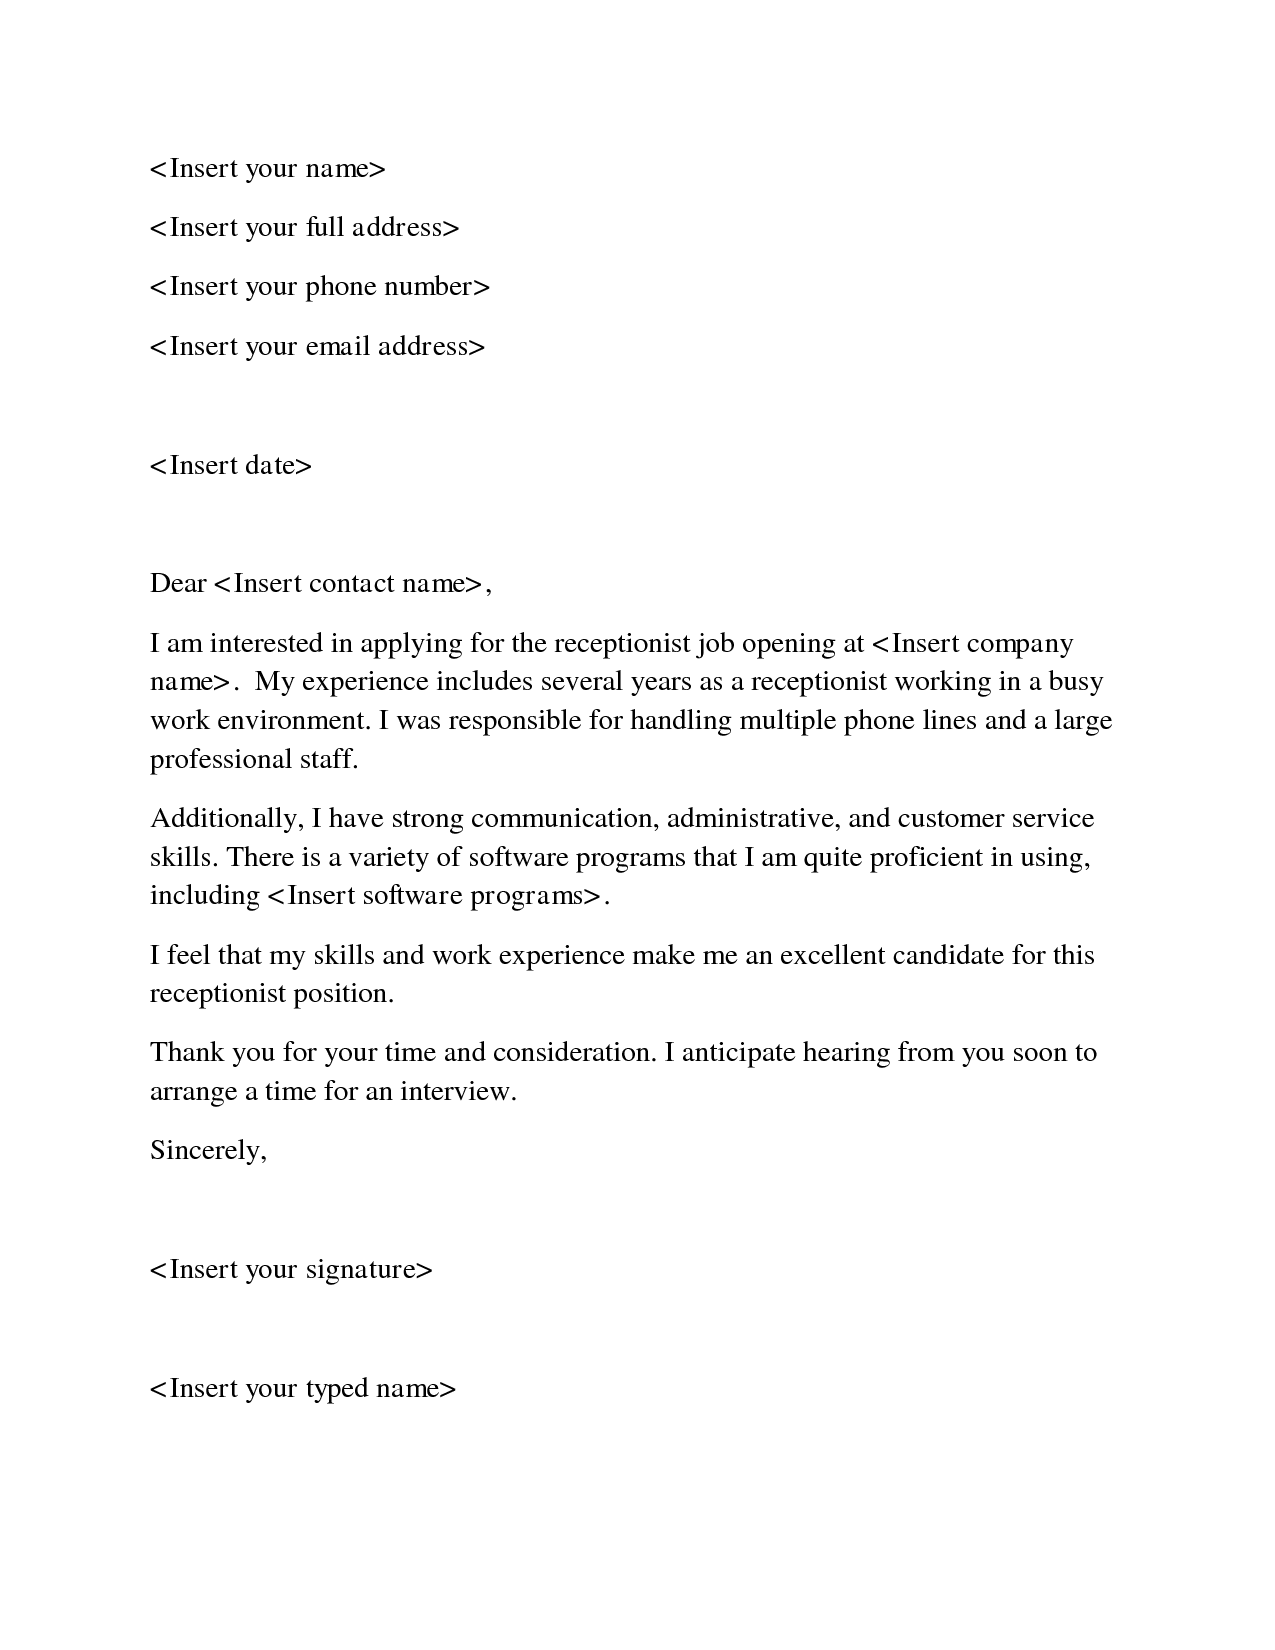 How to write a cover letter for receptionist position with no experience